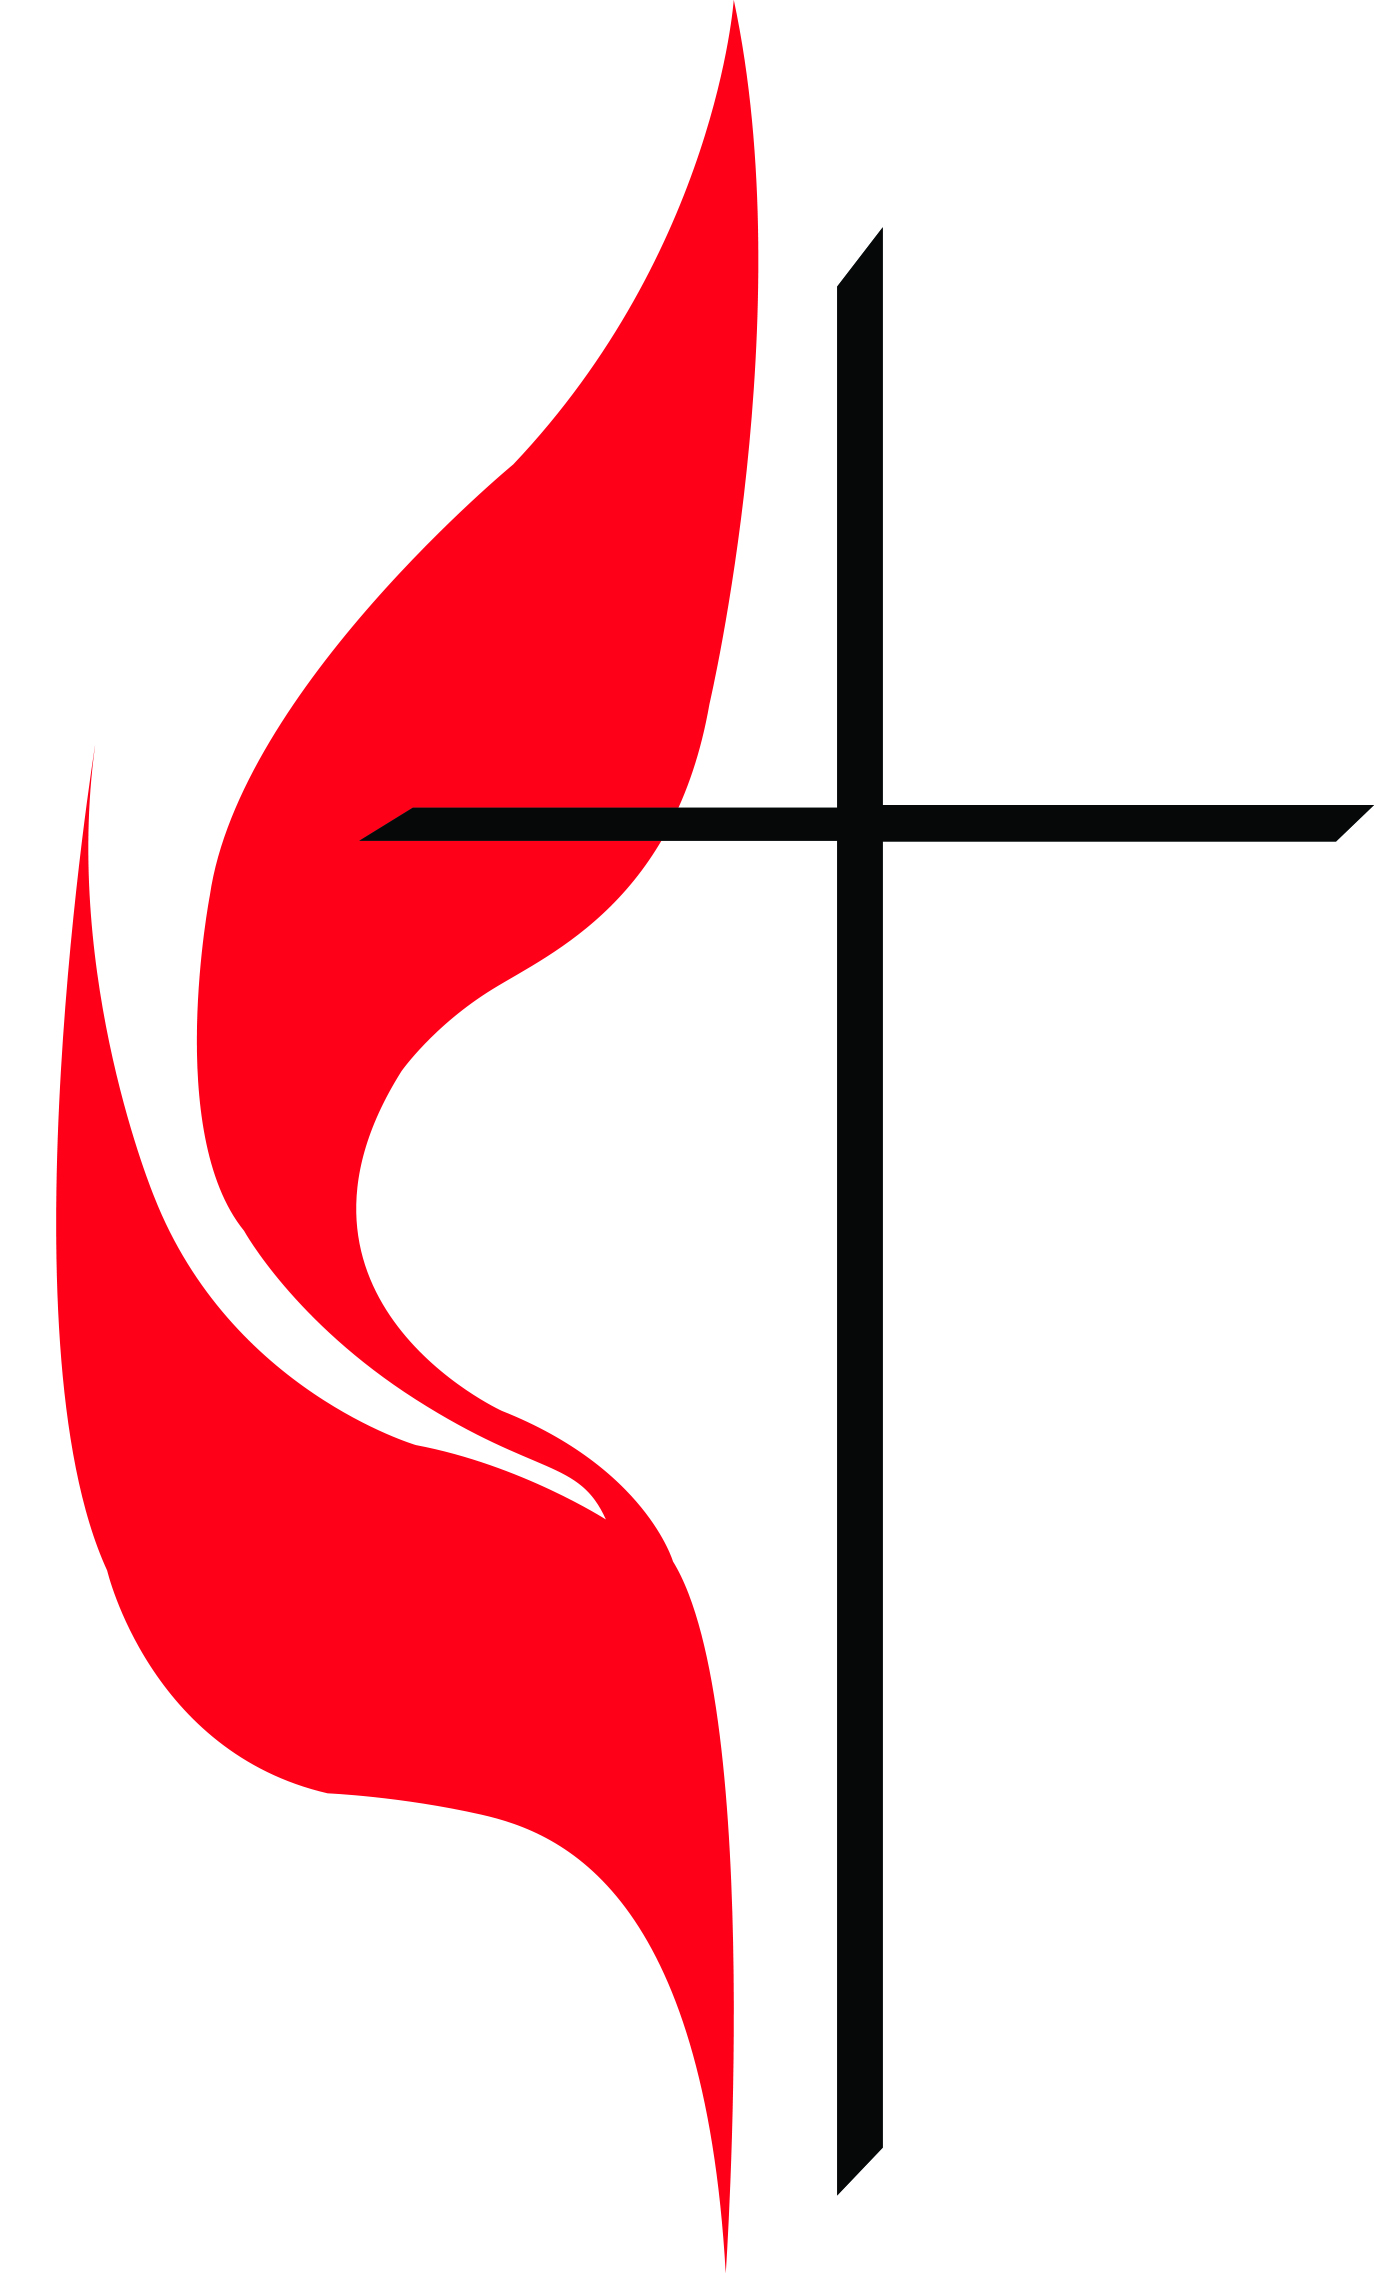 cross and flame icon united methodist church of greater new jersey rh gnjumc org united methodist cross and flame clipart united methodist cross and flame clipart